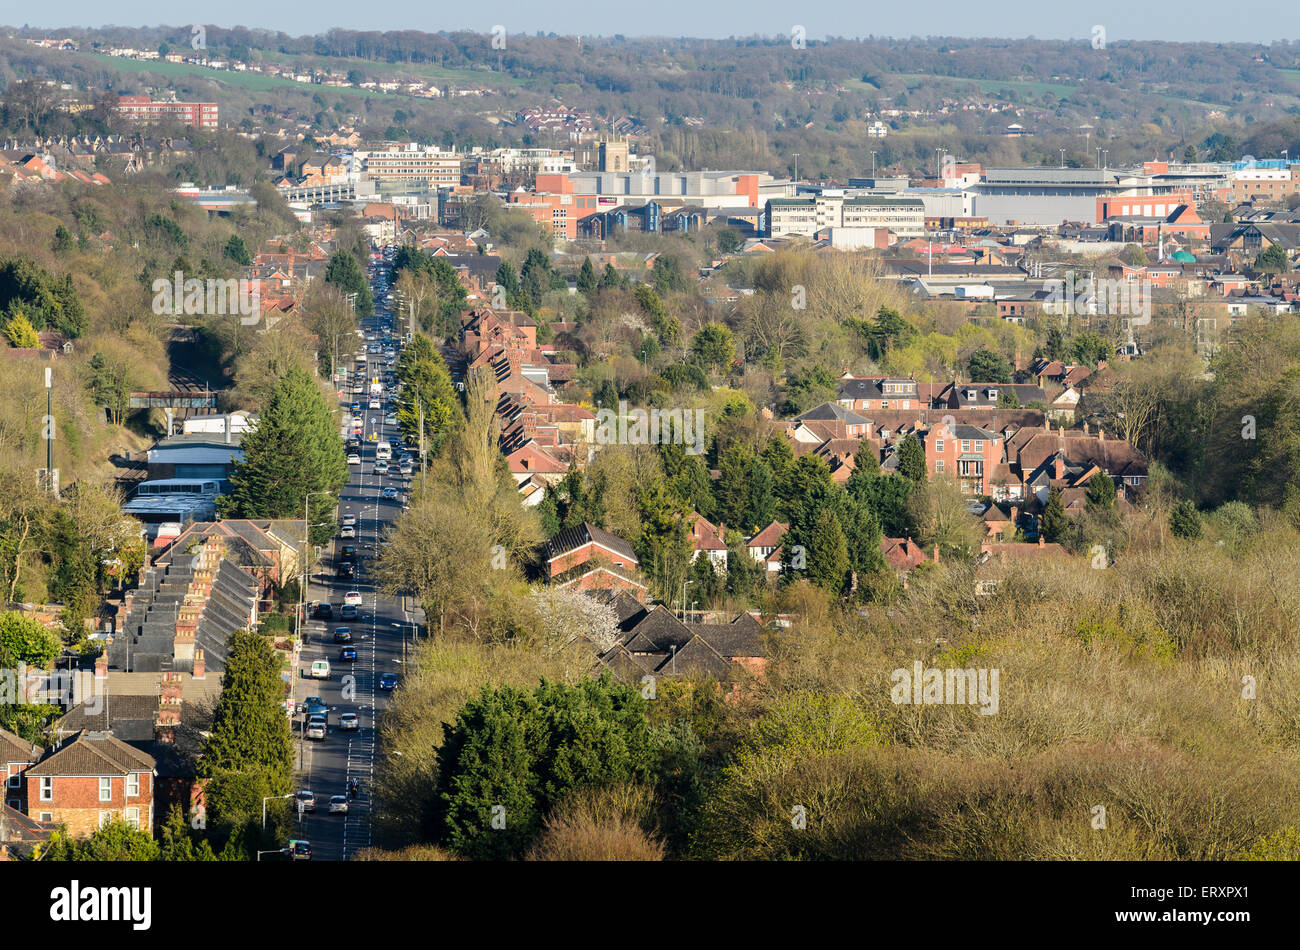 High Wycombe, Buckinghamshire, England, U.K. viewed from West Wycombe Hill. - Stock Image